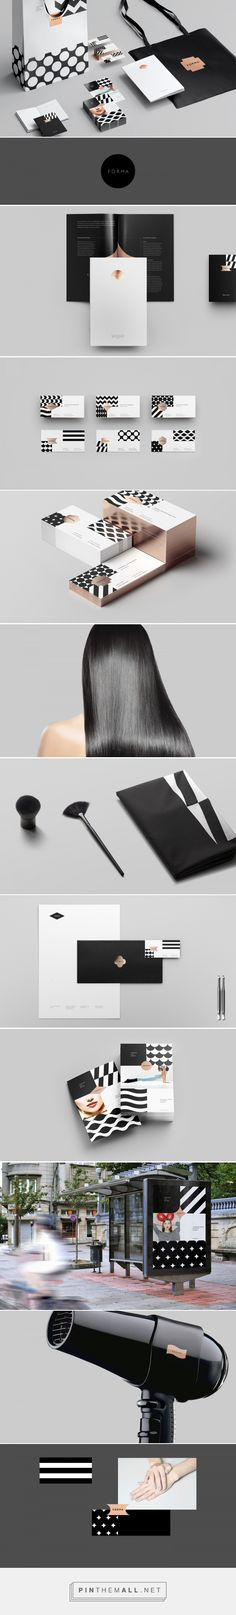 Forma Beauty Shop Branding by Sergey Tarasenko | Fivestar Branding Agency – Design and Branding Agency & Curated Inspiration Gallery